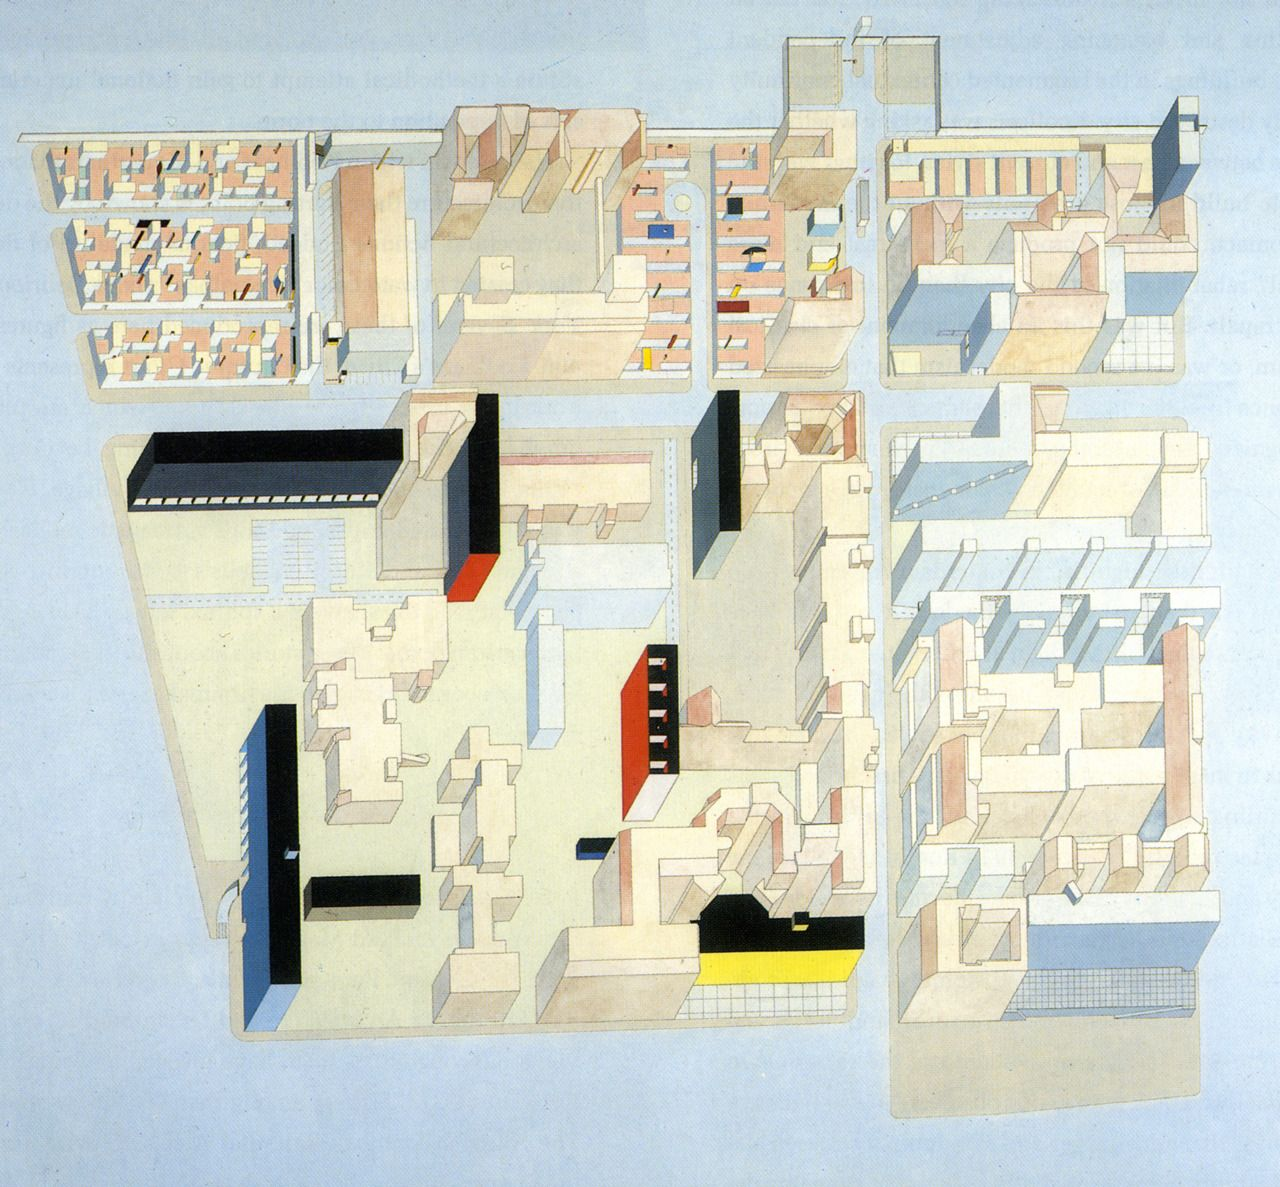 Rem Koolhaas/OMA, Berlin International Architectural Exhibition, Competition Entry, 1980